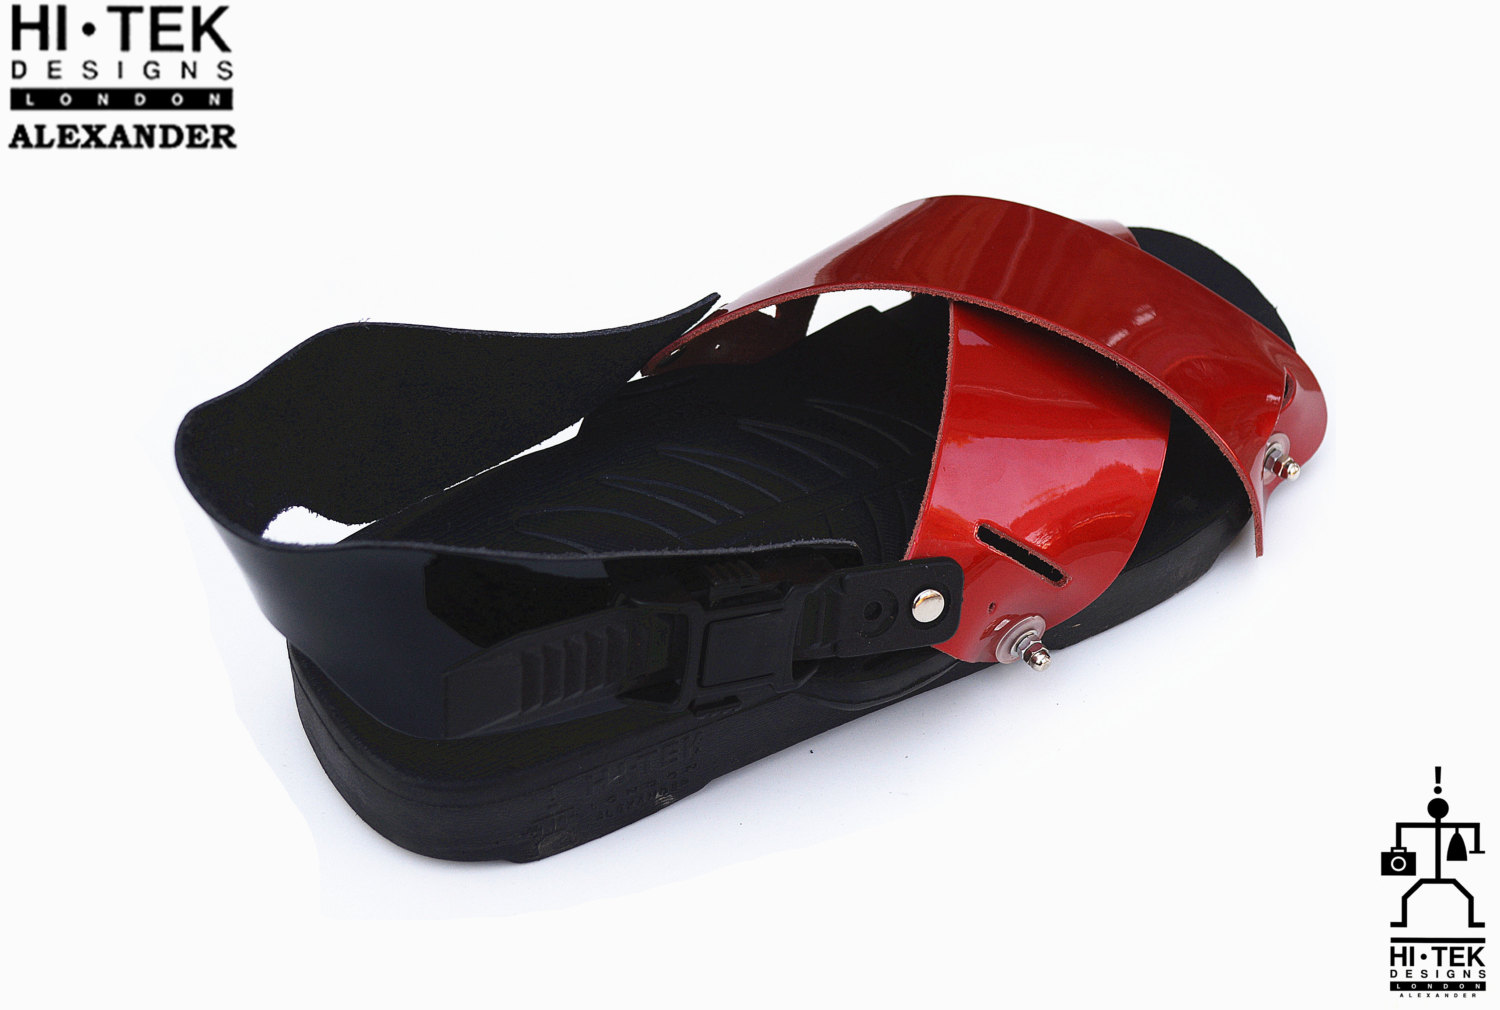 mens sandals, black EVA sole red patent upper, strap sandals, unusual statement unique theatrical